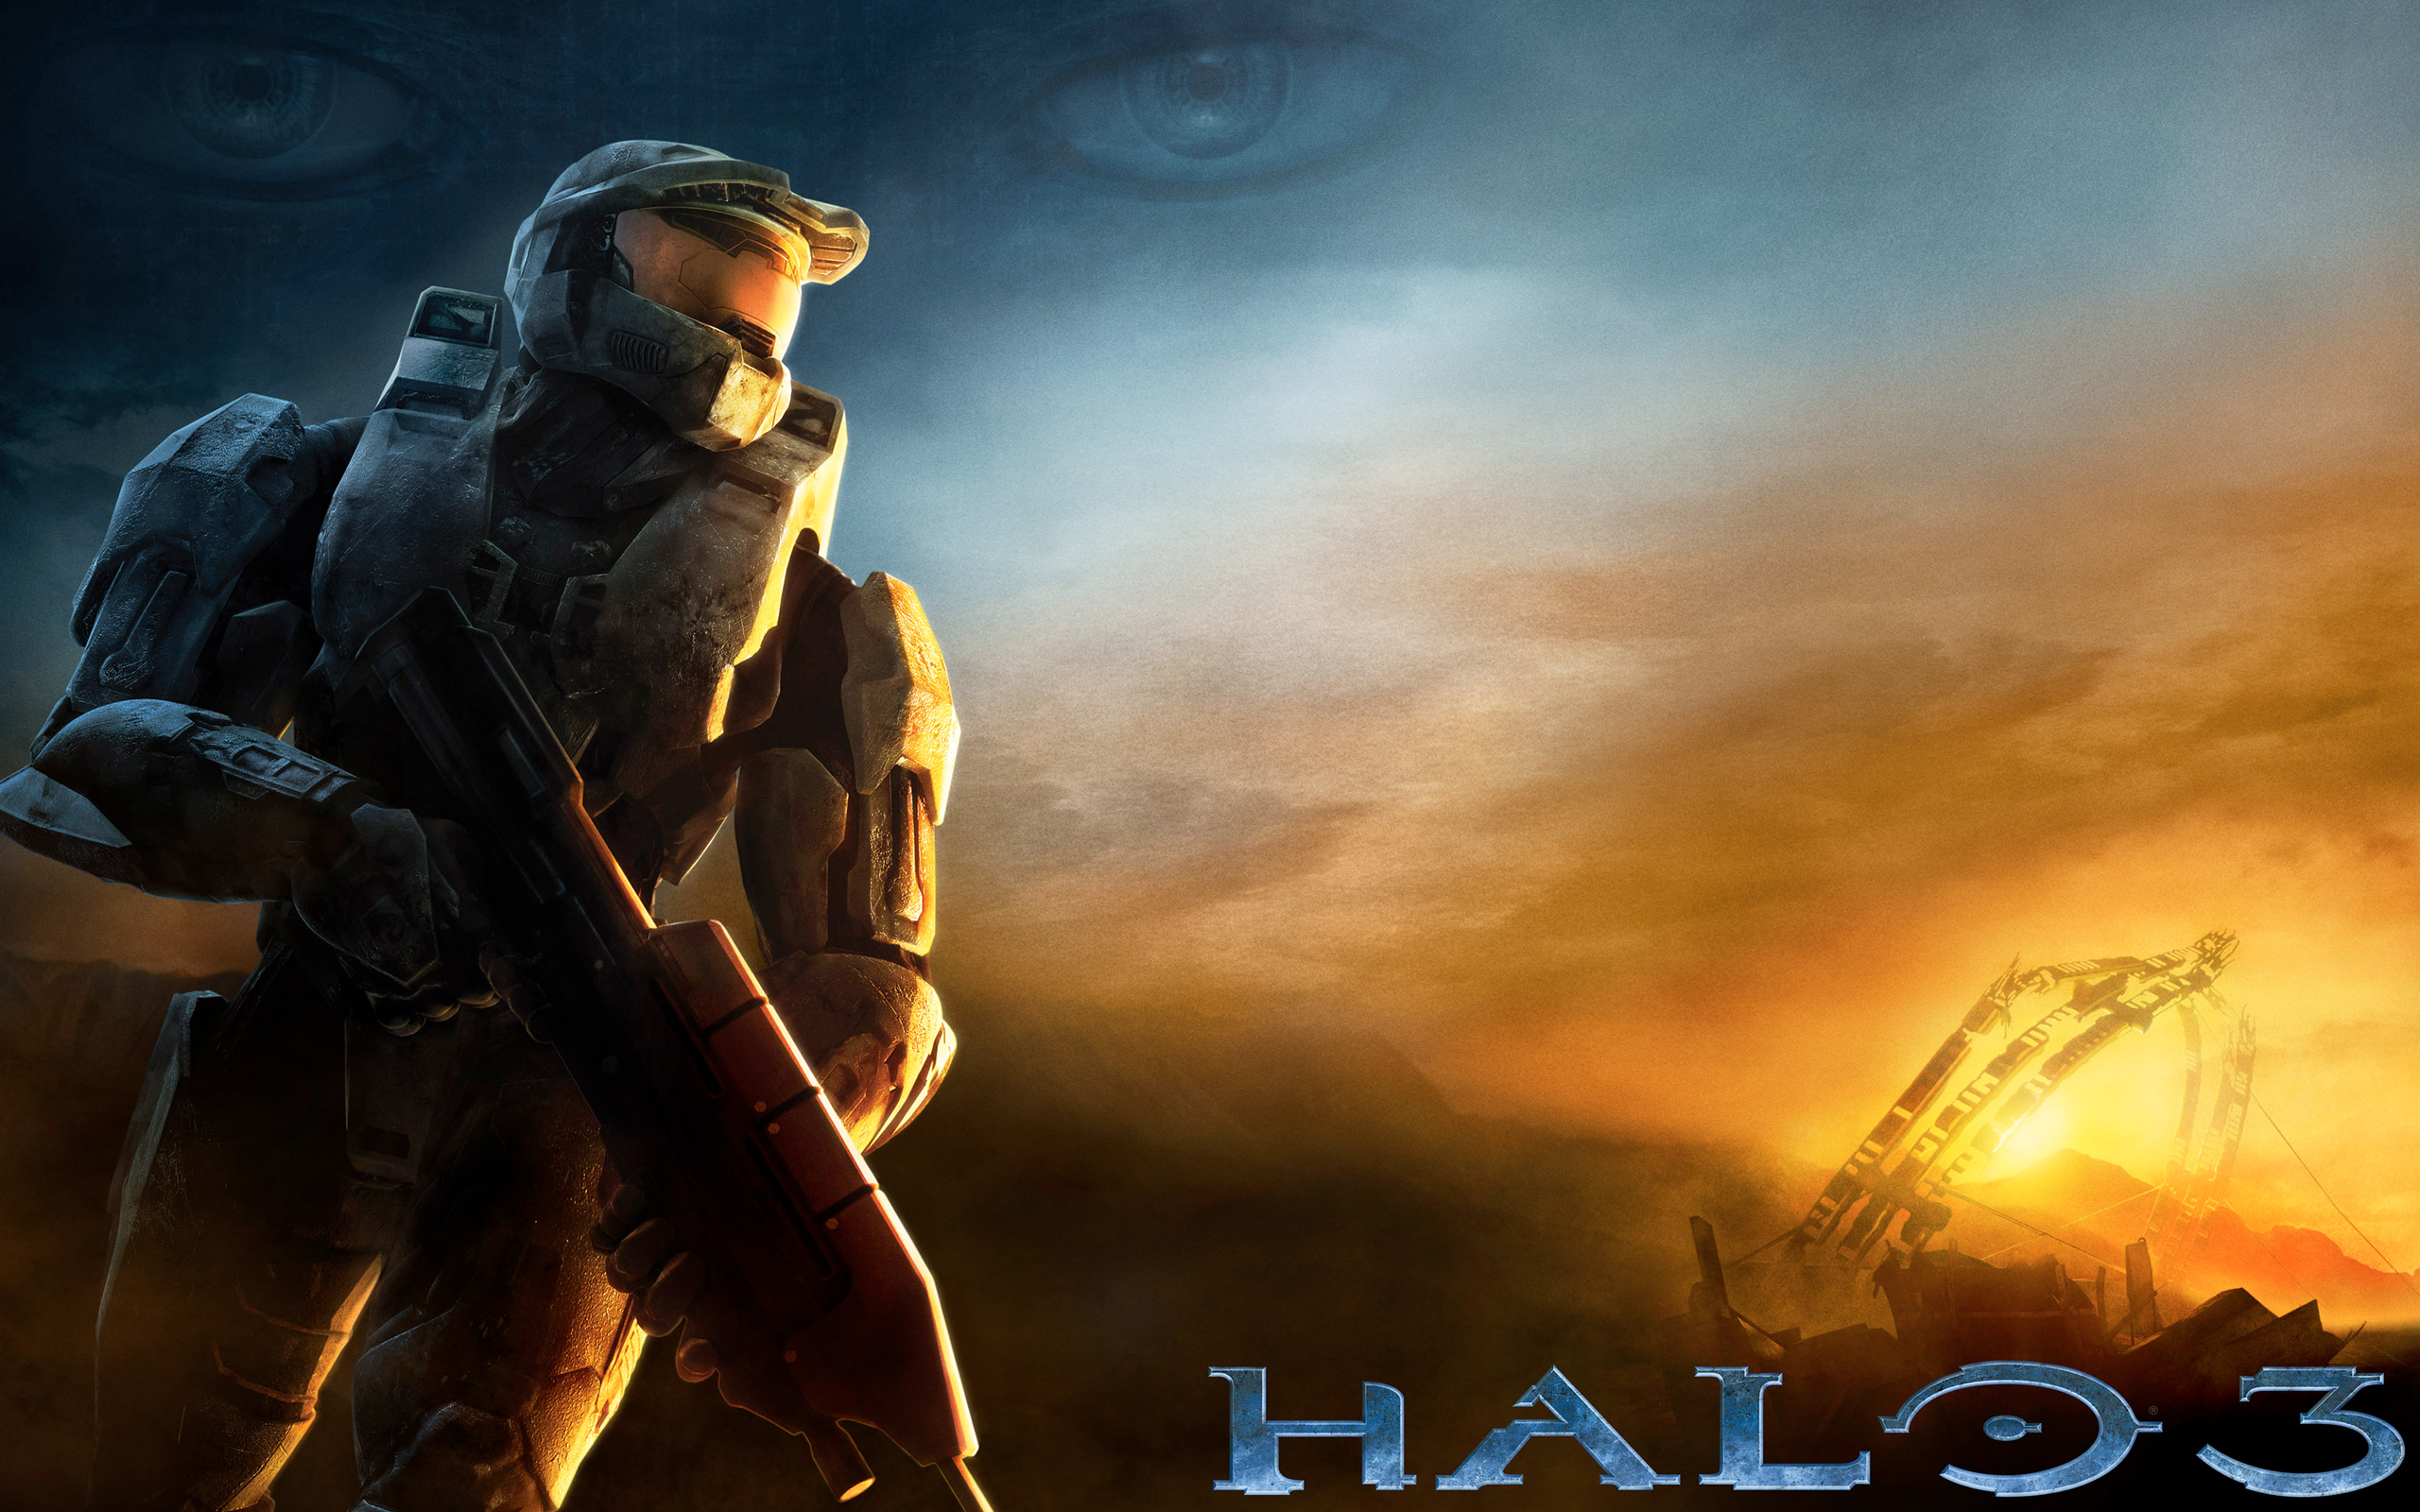 Halo Game 20736 Hd Wallpaper